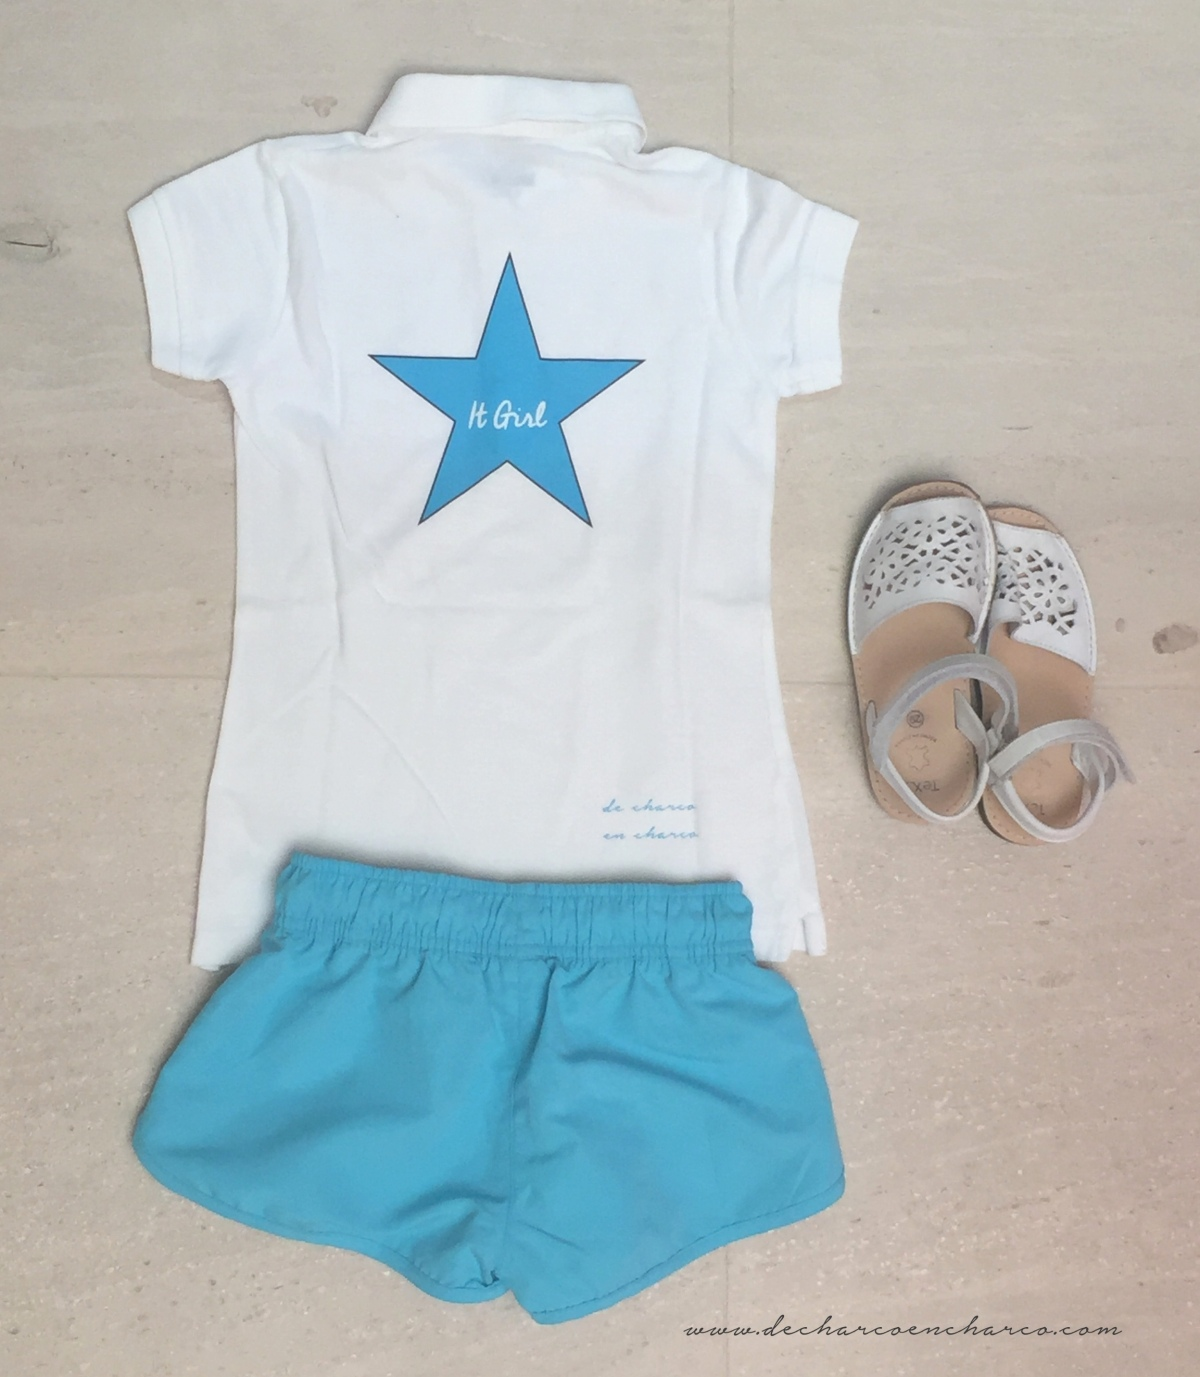 look primaversa sport niña polo detras it girl www.decharcoencharco.com